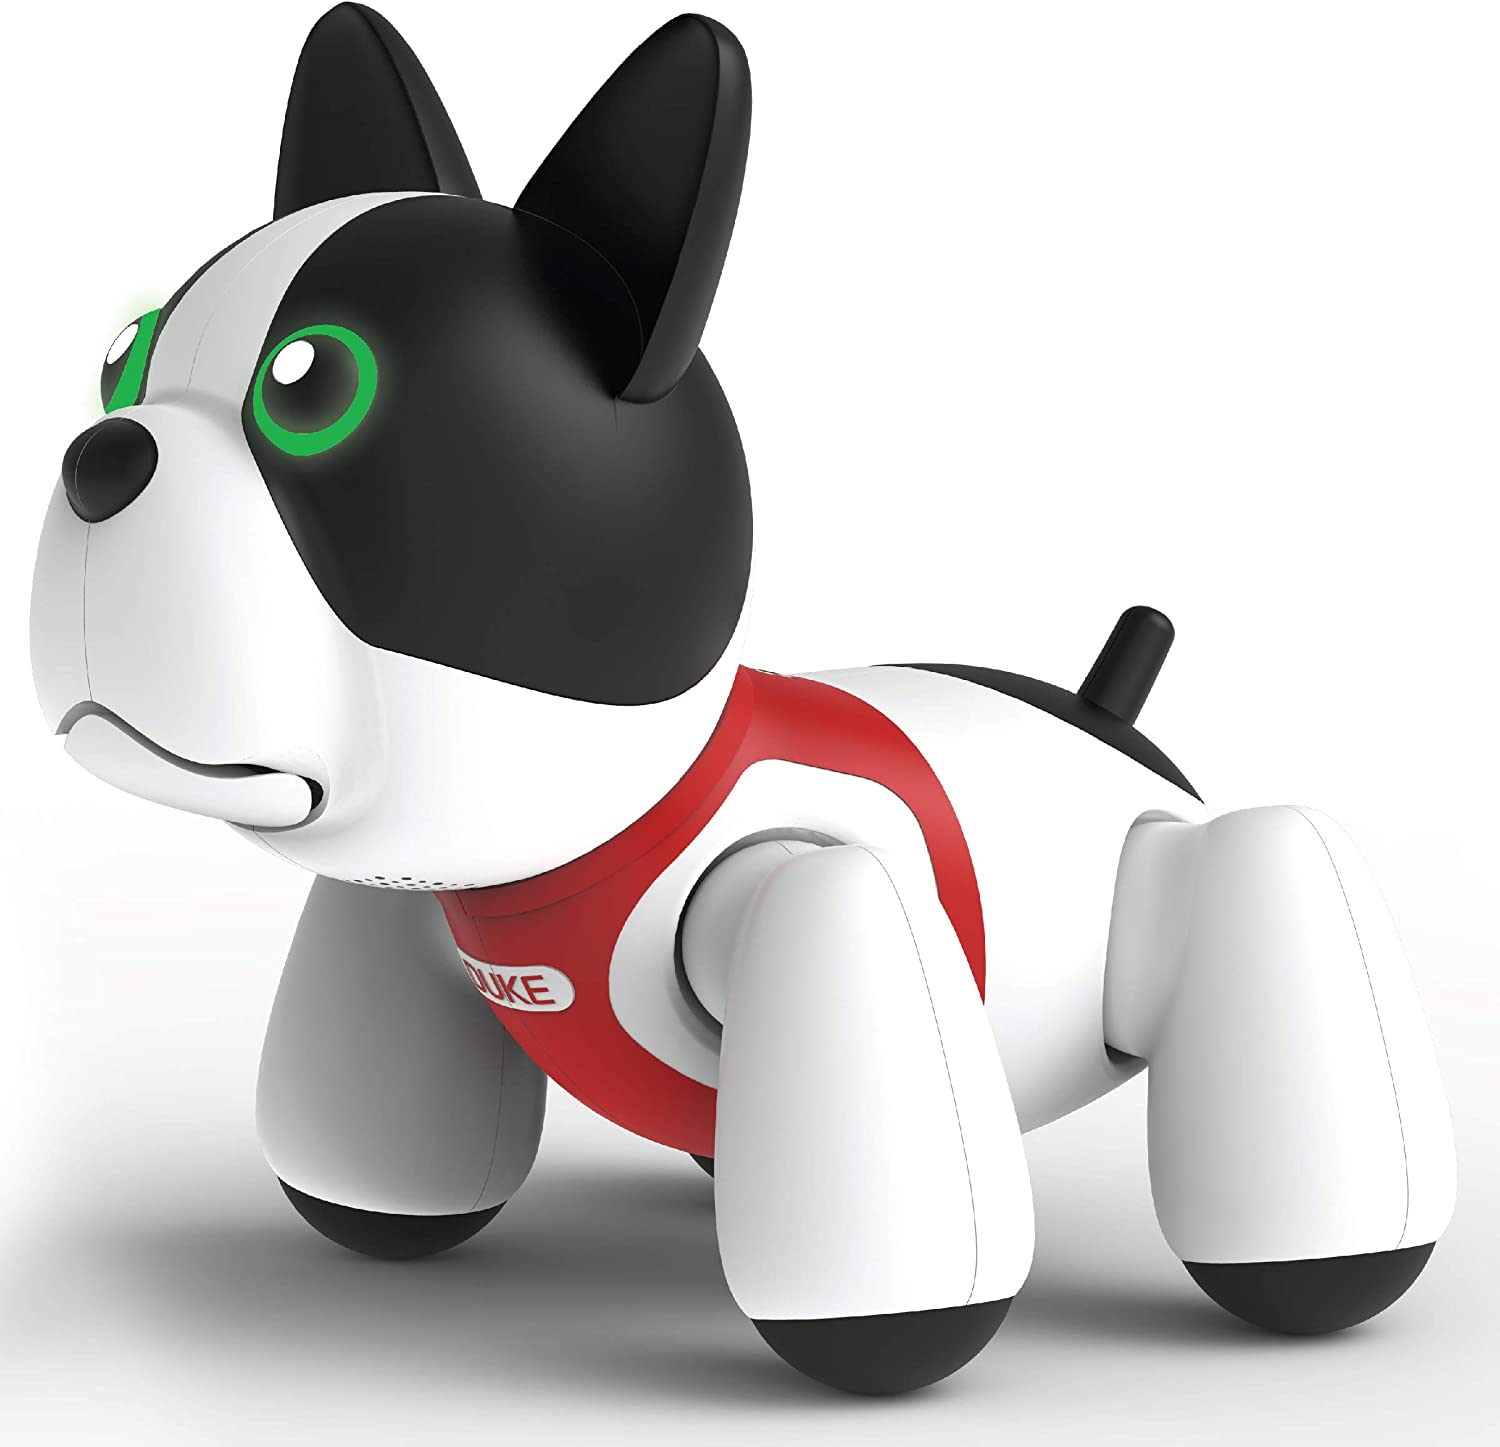 Top 10 Best Robot Pets For Kids (2020 Reviews & Buying Guide) 2